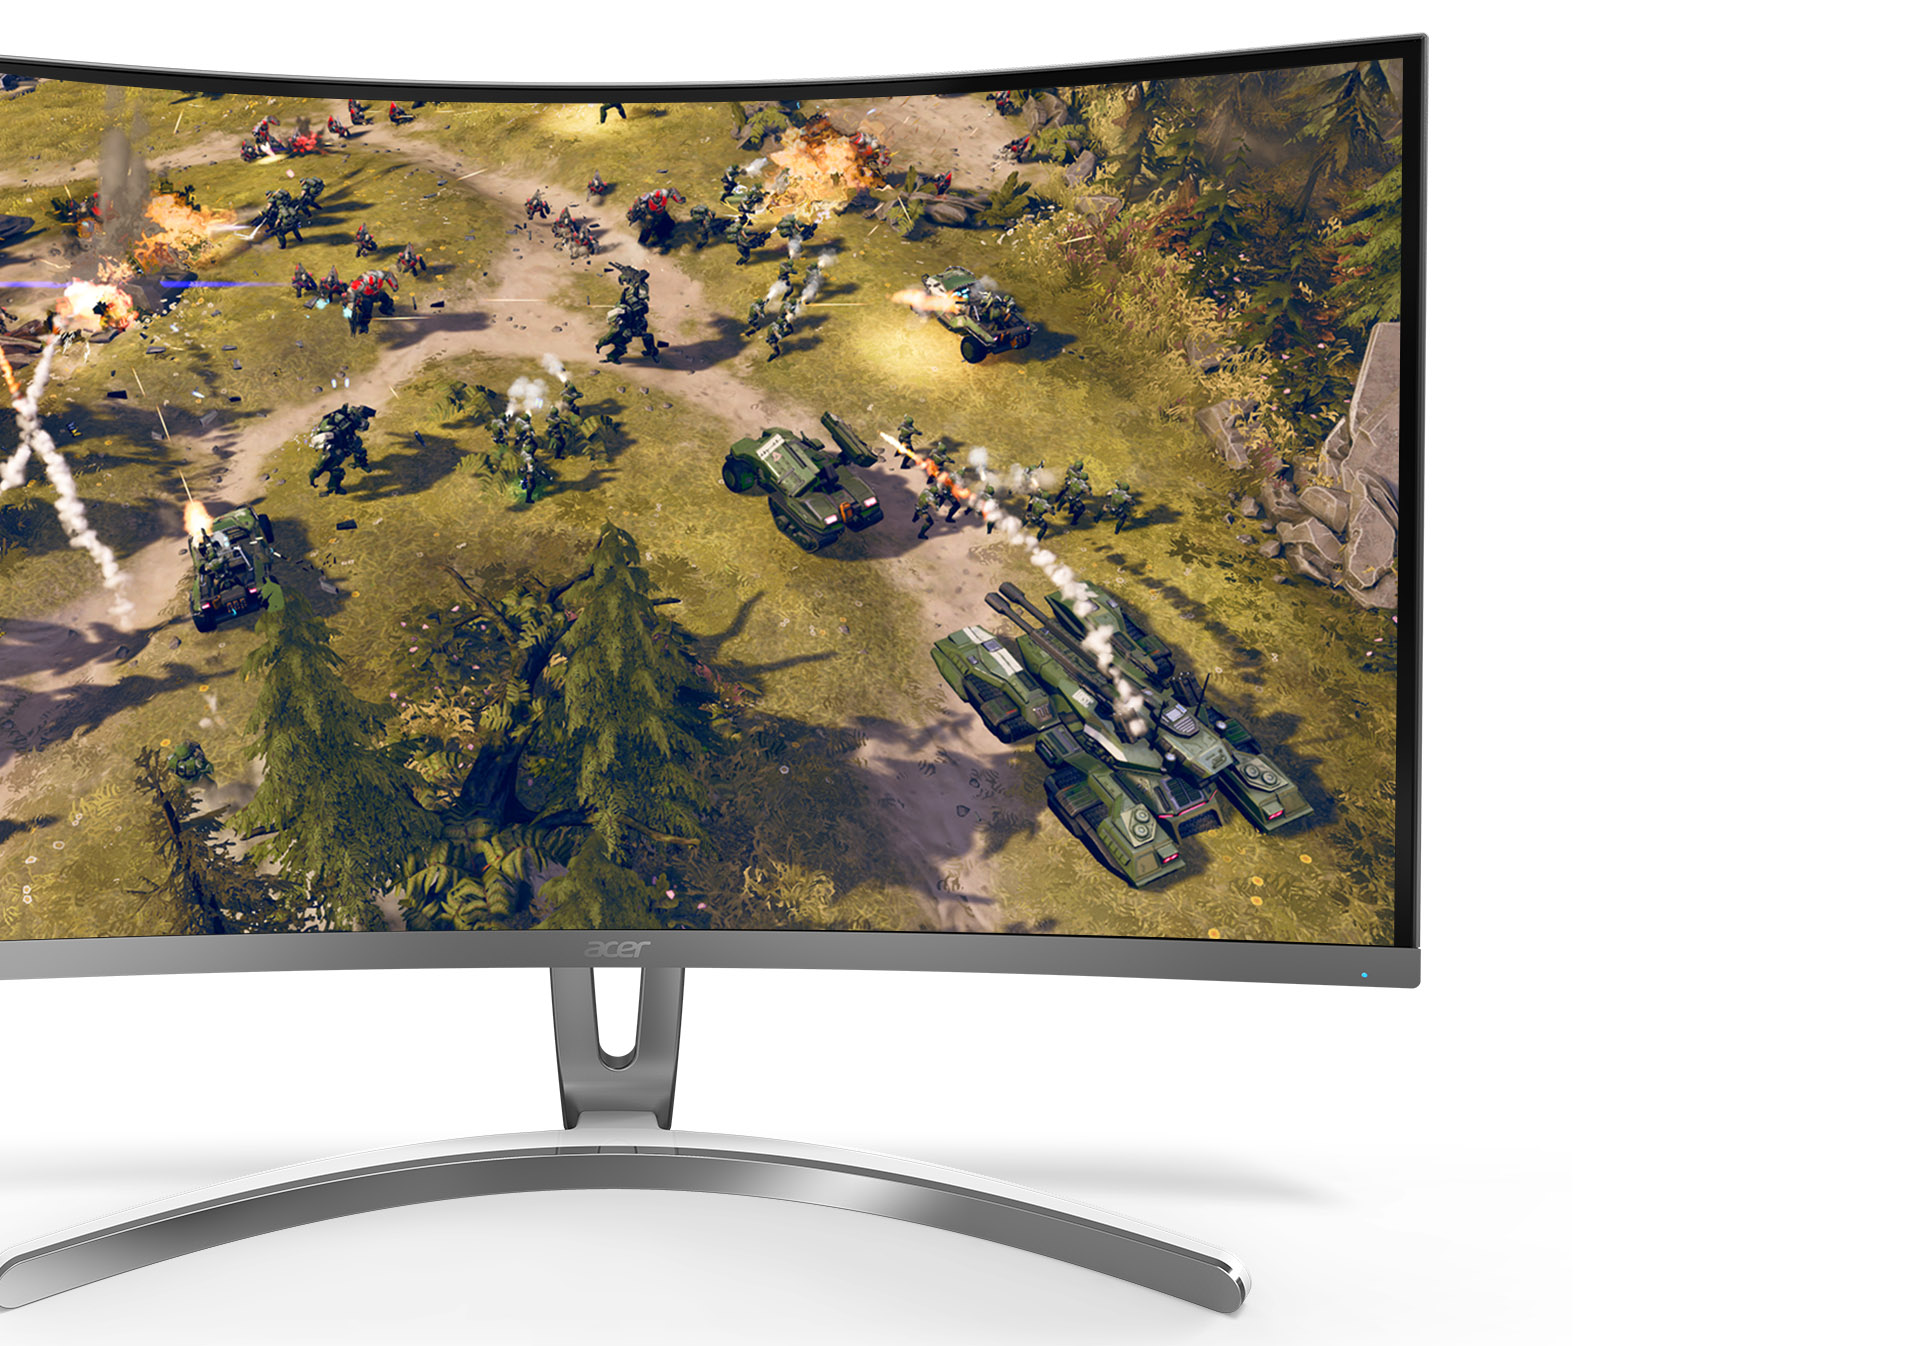 Acer ED3 Series Features ksp 01 - Large